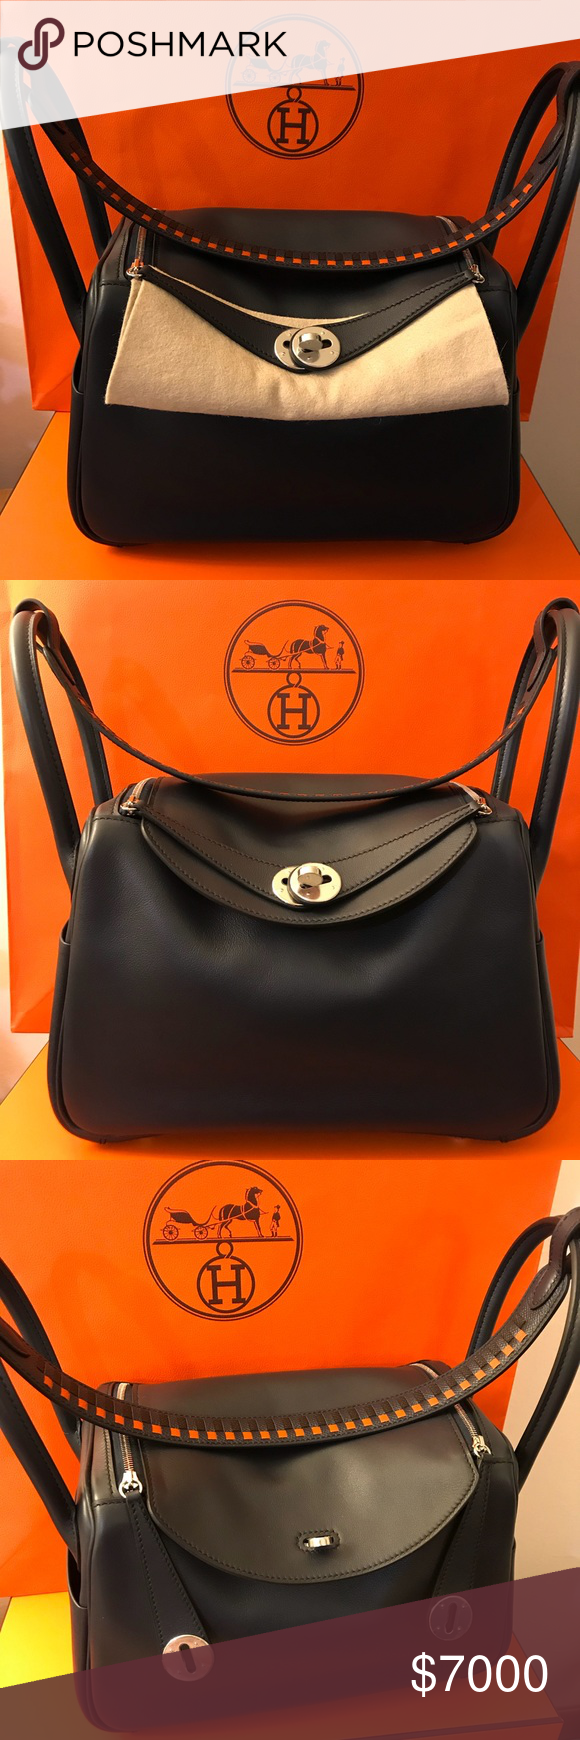 5039d26aa110 Crochet Shoulder Bags · RARE HERMES LINDY 26 WITH TRESSAGE HANDLE Brand  new! Comes with full set w original